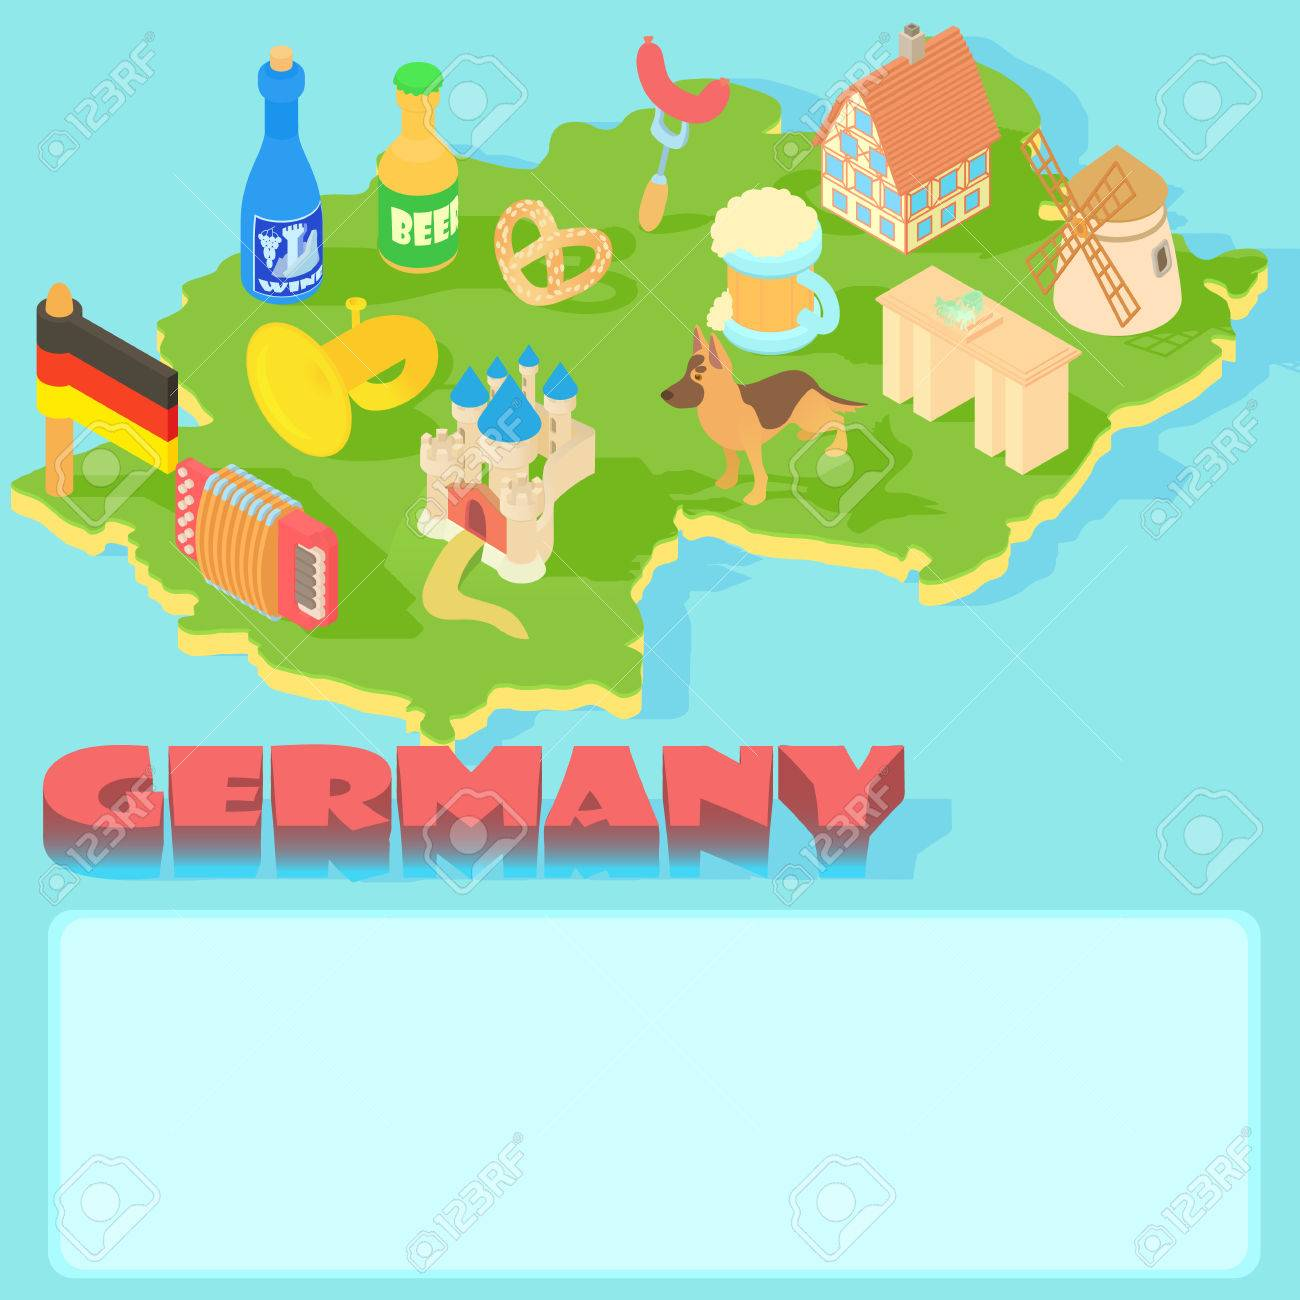 Cartoon Map Of Germany.Germany Map In Cartoon Style For Any Design Royalty Free Cliparts